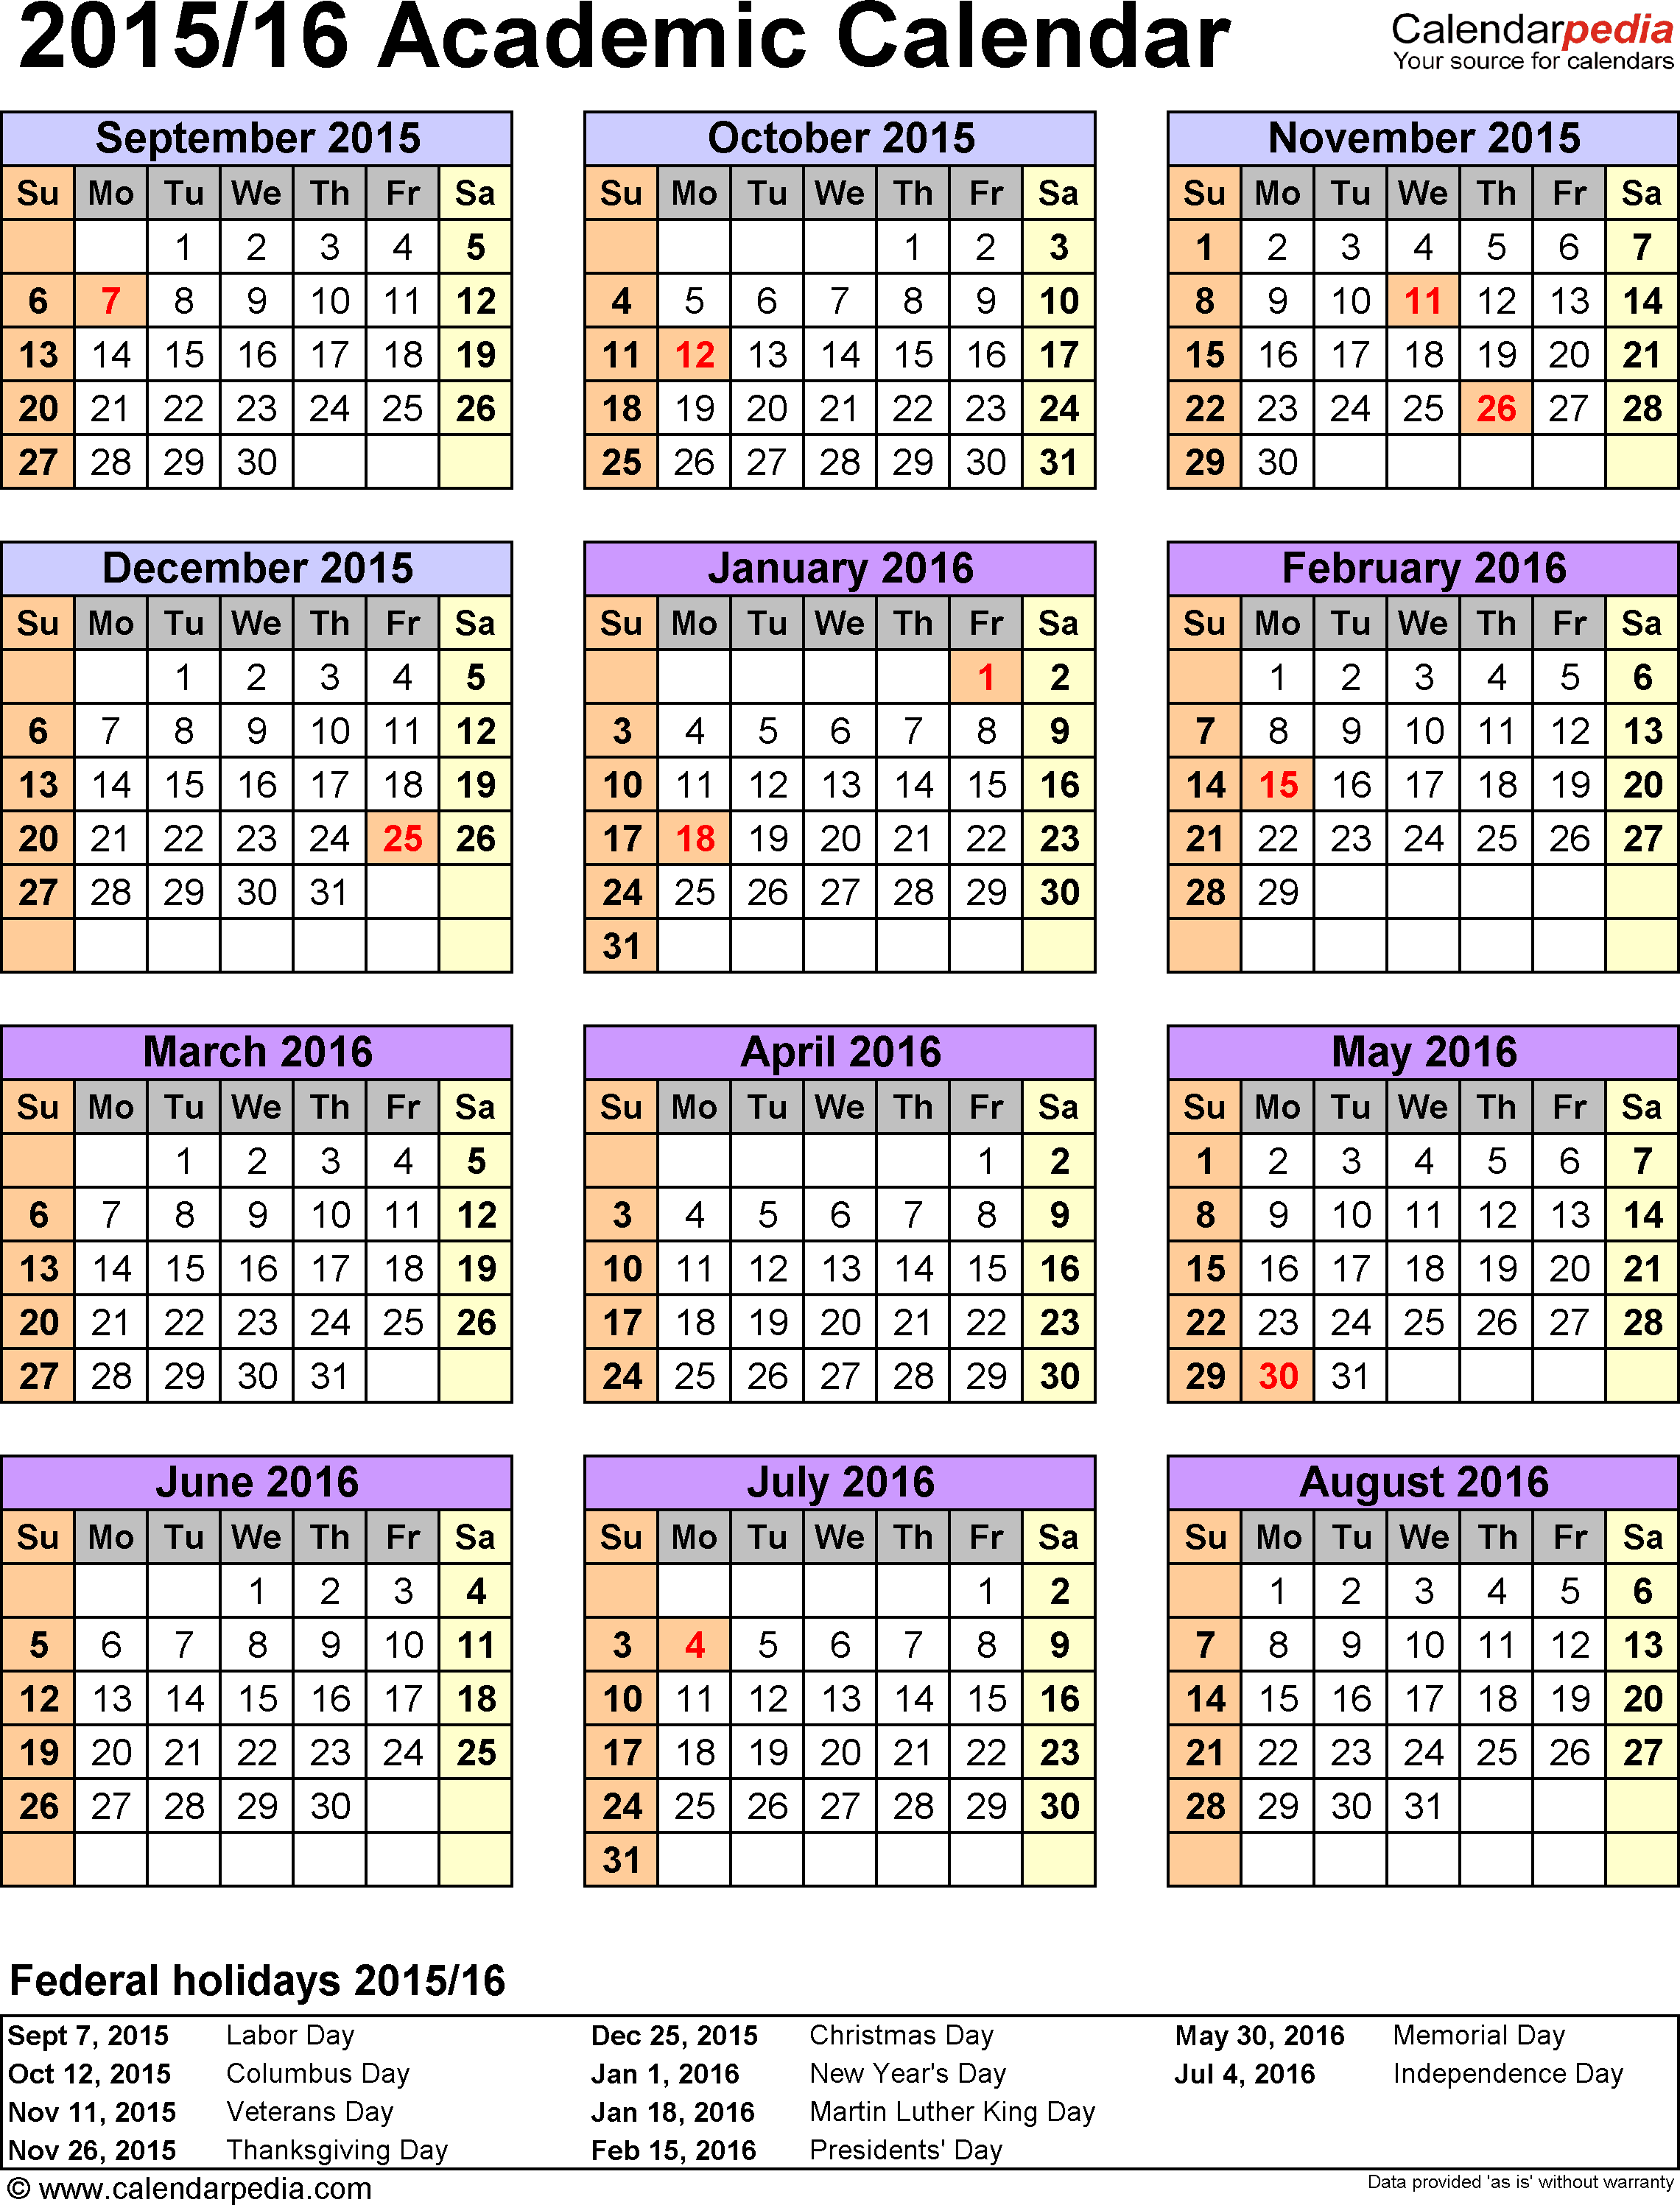 Template 7: Academic calendar 2015/16 for Word, portrait, 1 page, year at a glance